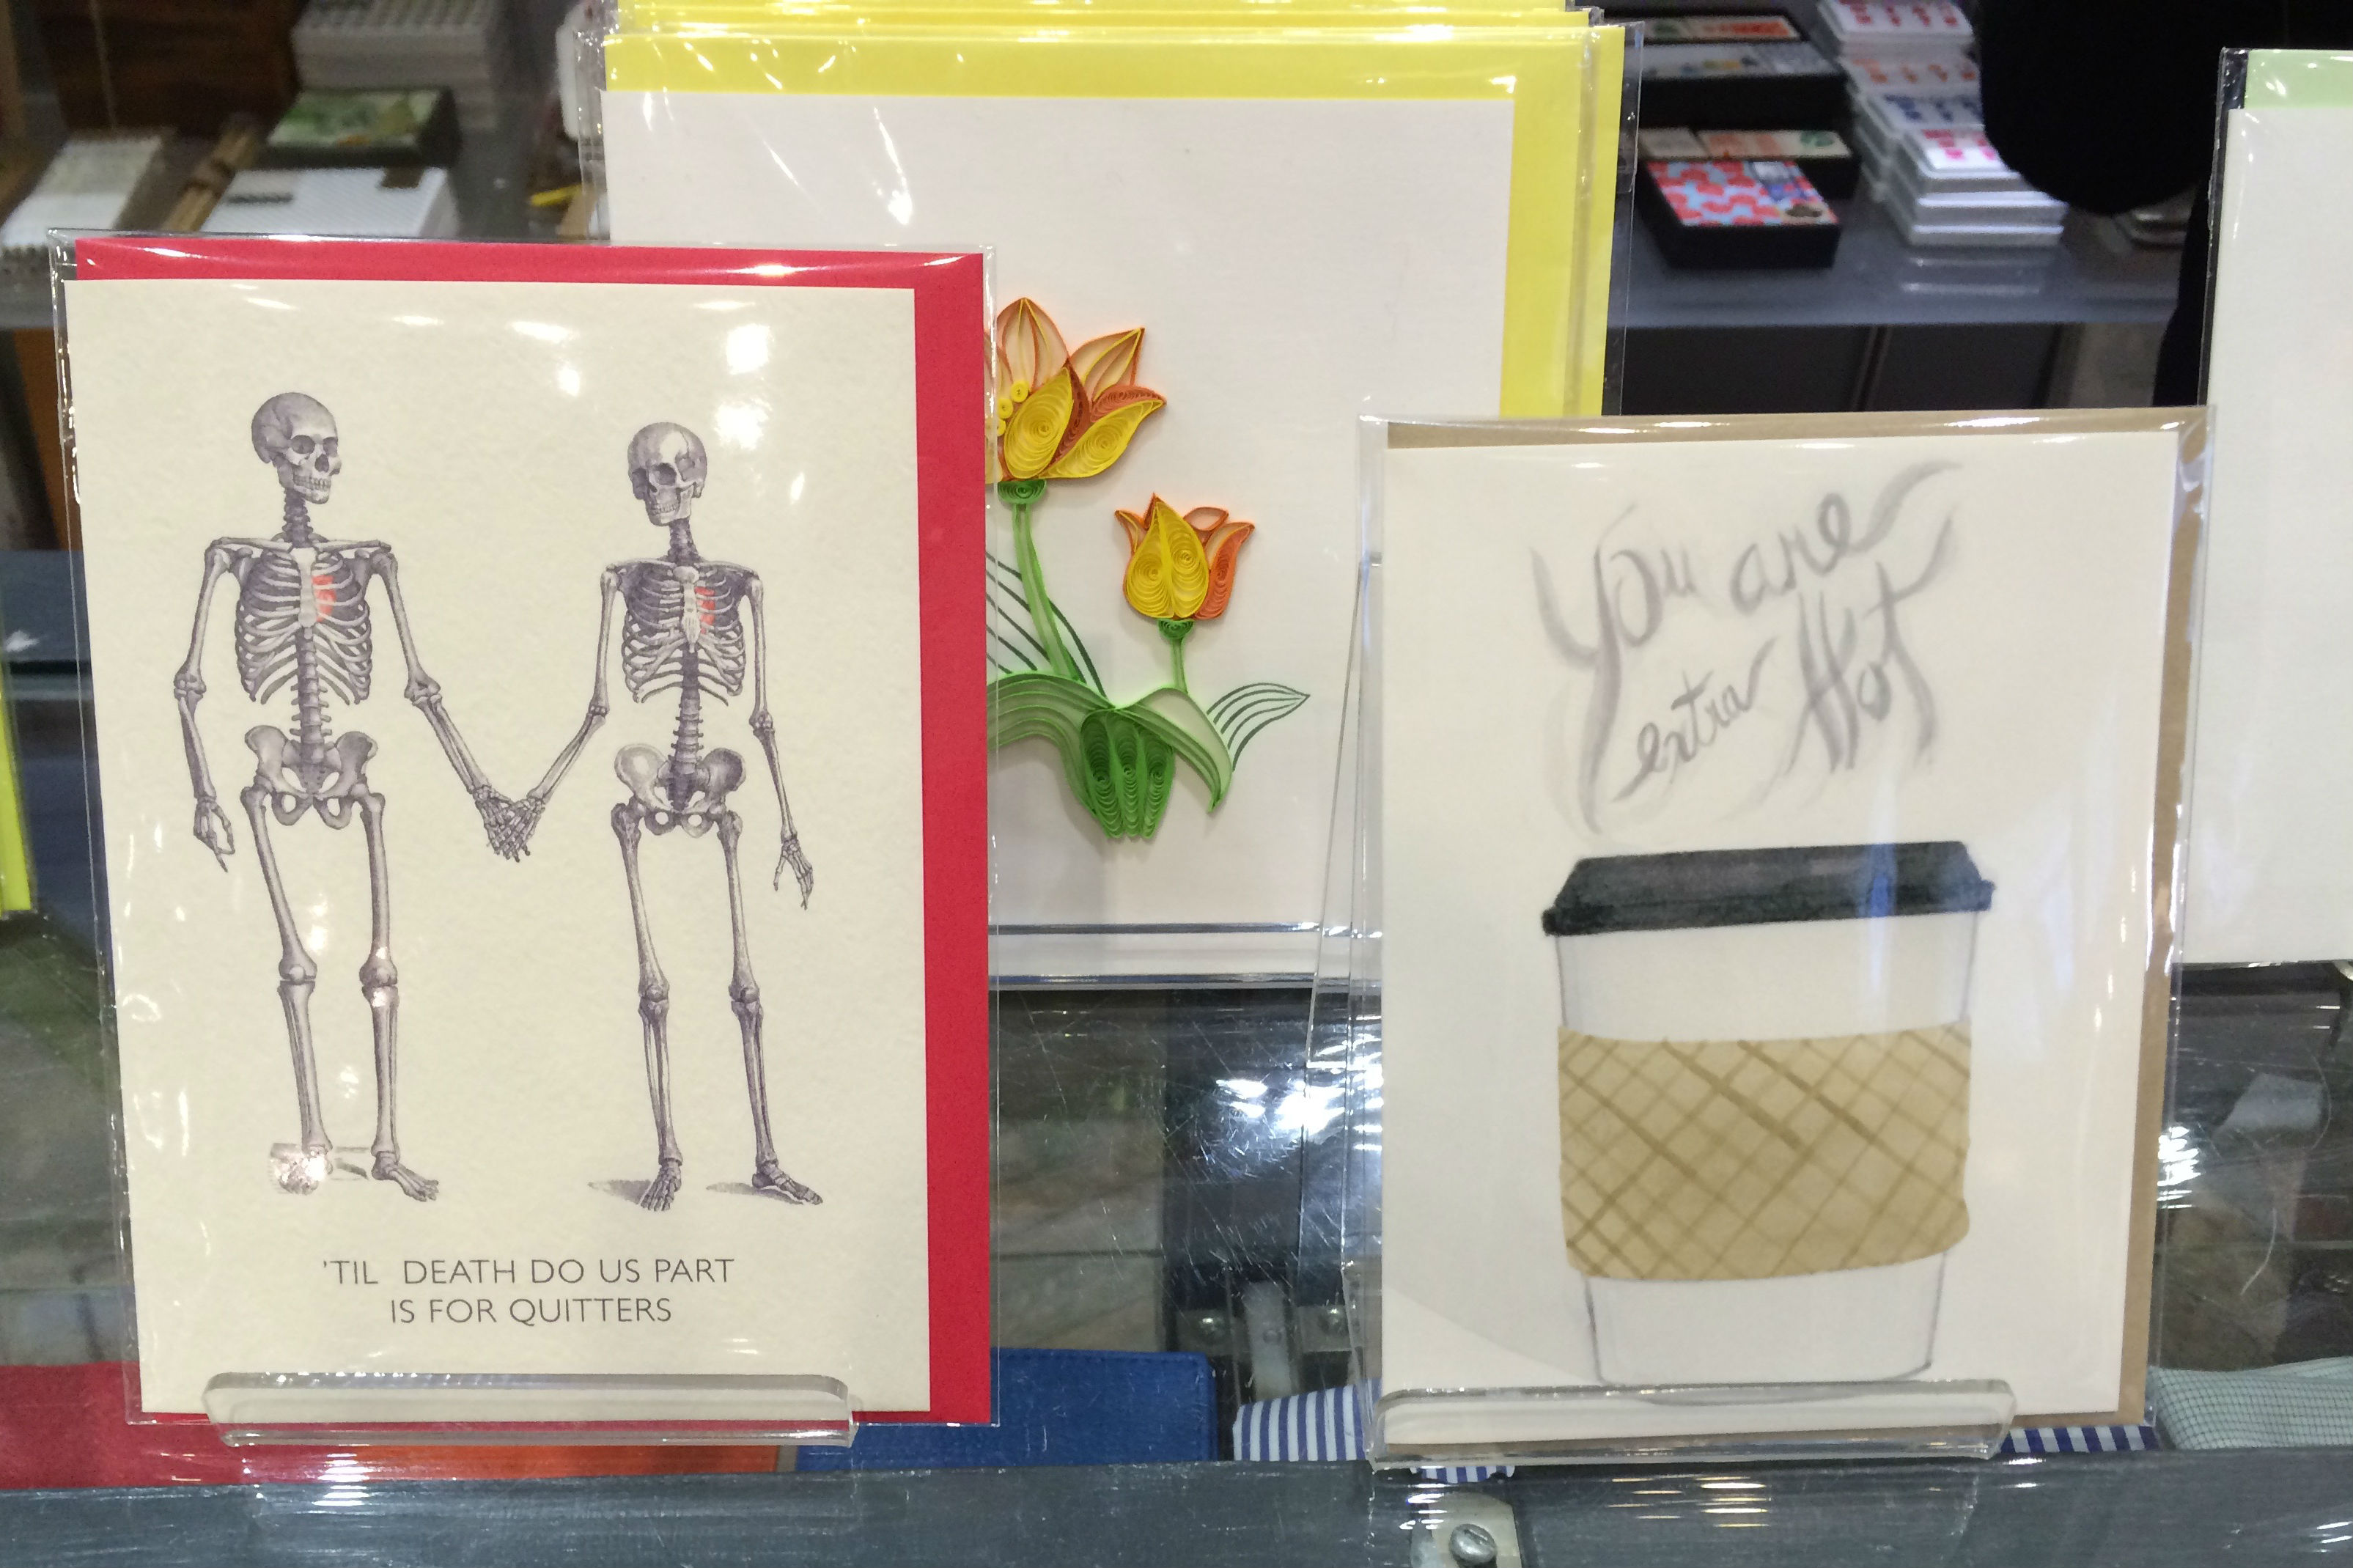 Where To Buy A Non-Cheesy Valentine's Day Card - West Village ...